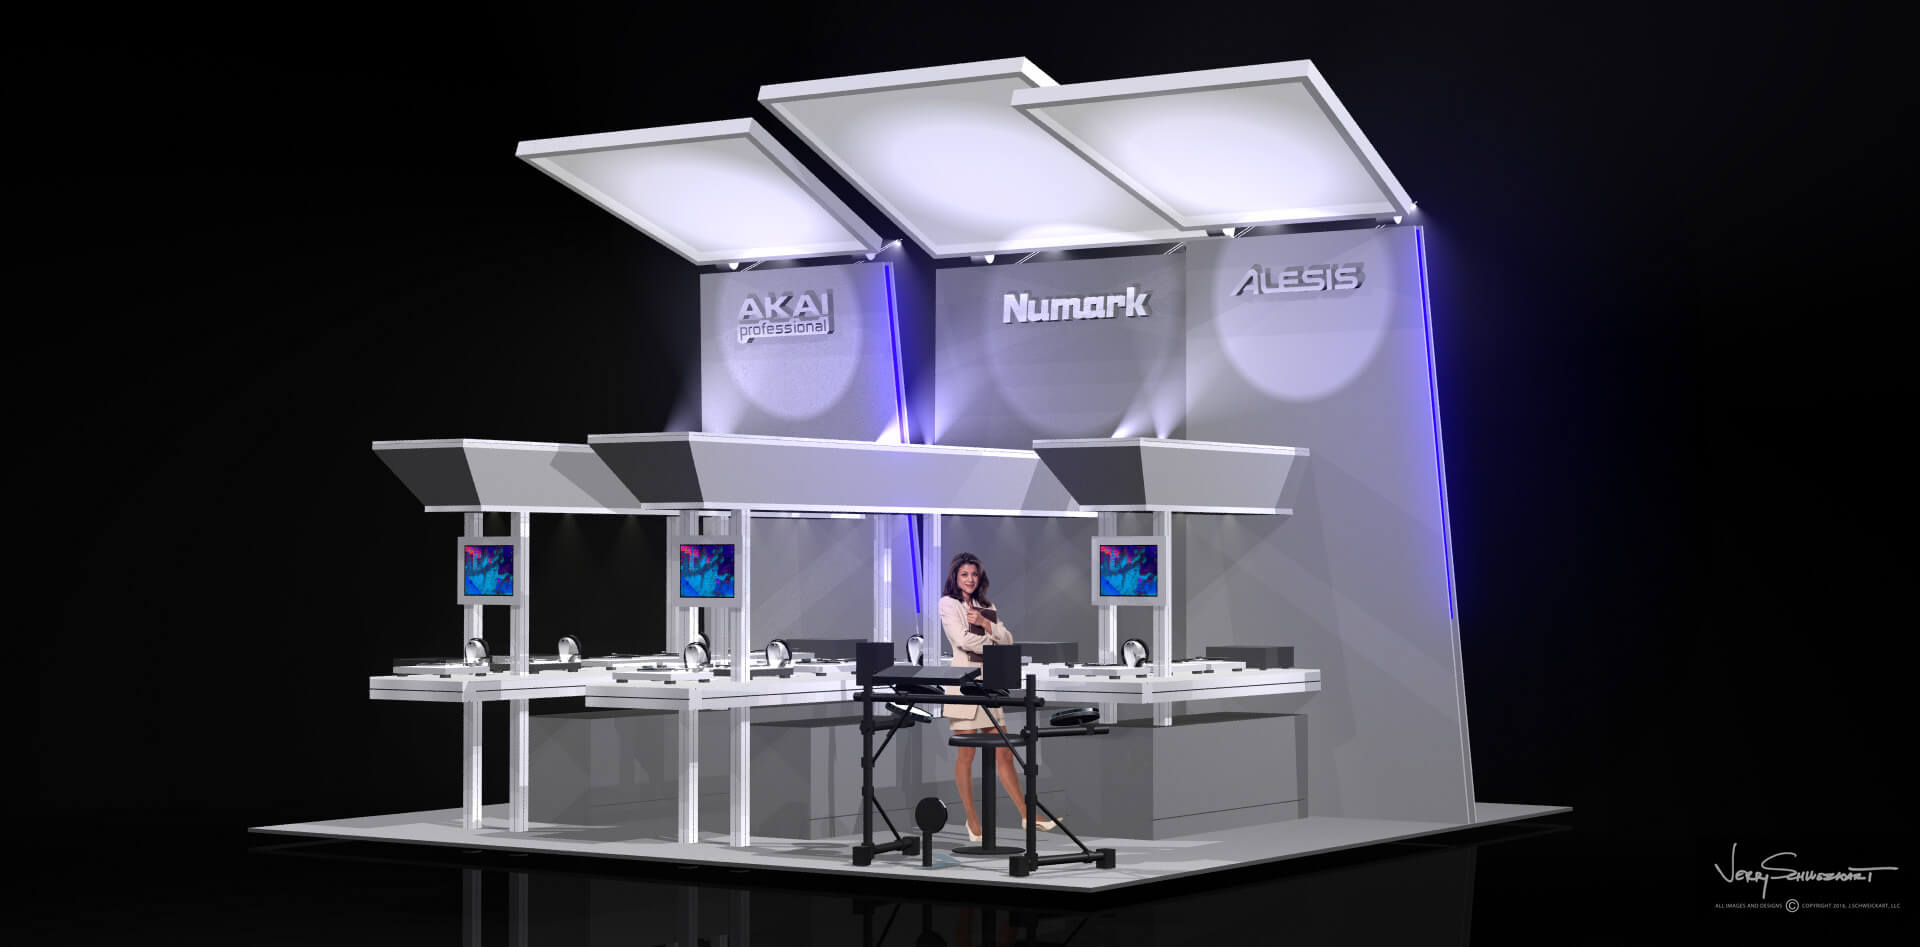 Numark Audio Exhibit